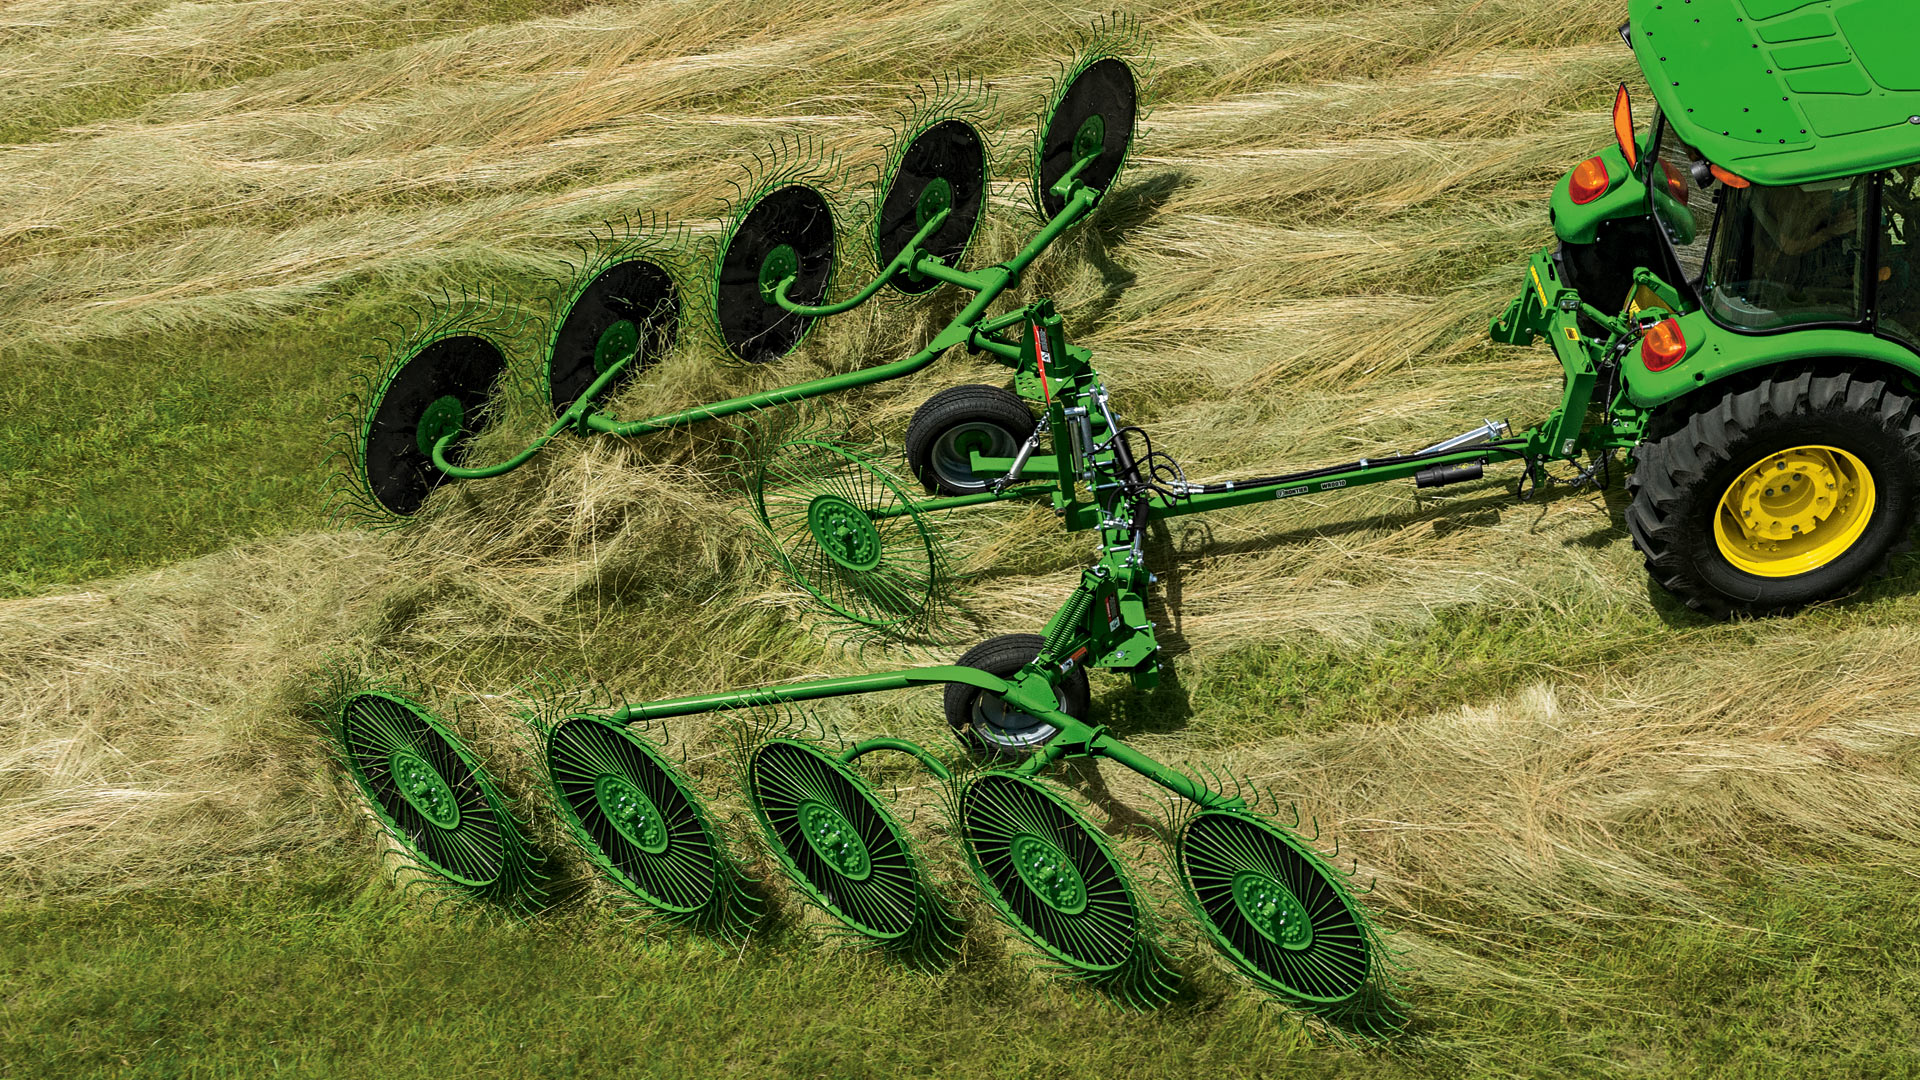 Name Of Parts Farm Implements : Brazil agricultural equipment market to be fueled by